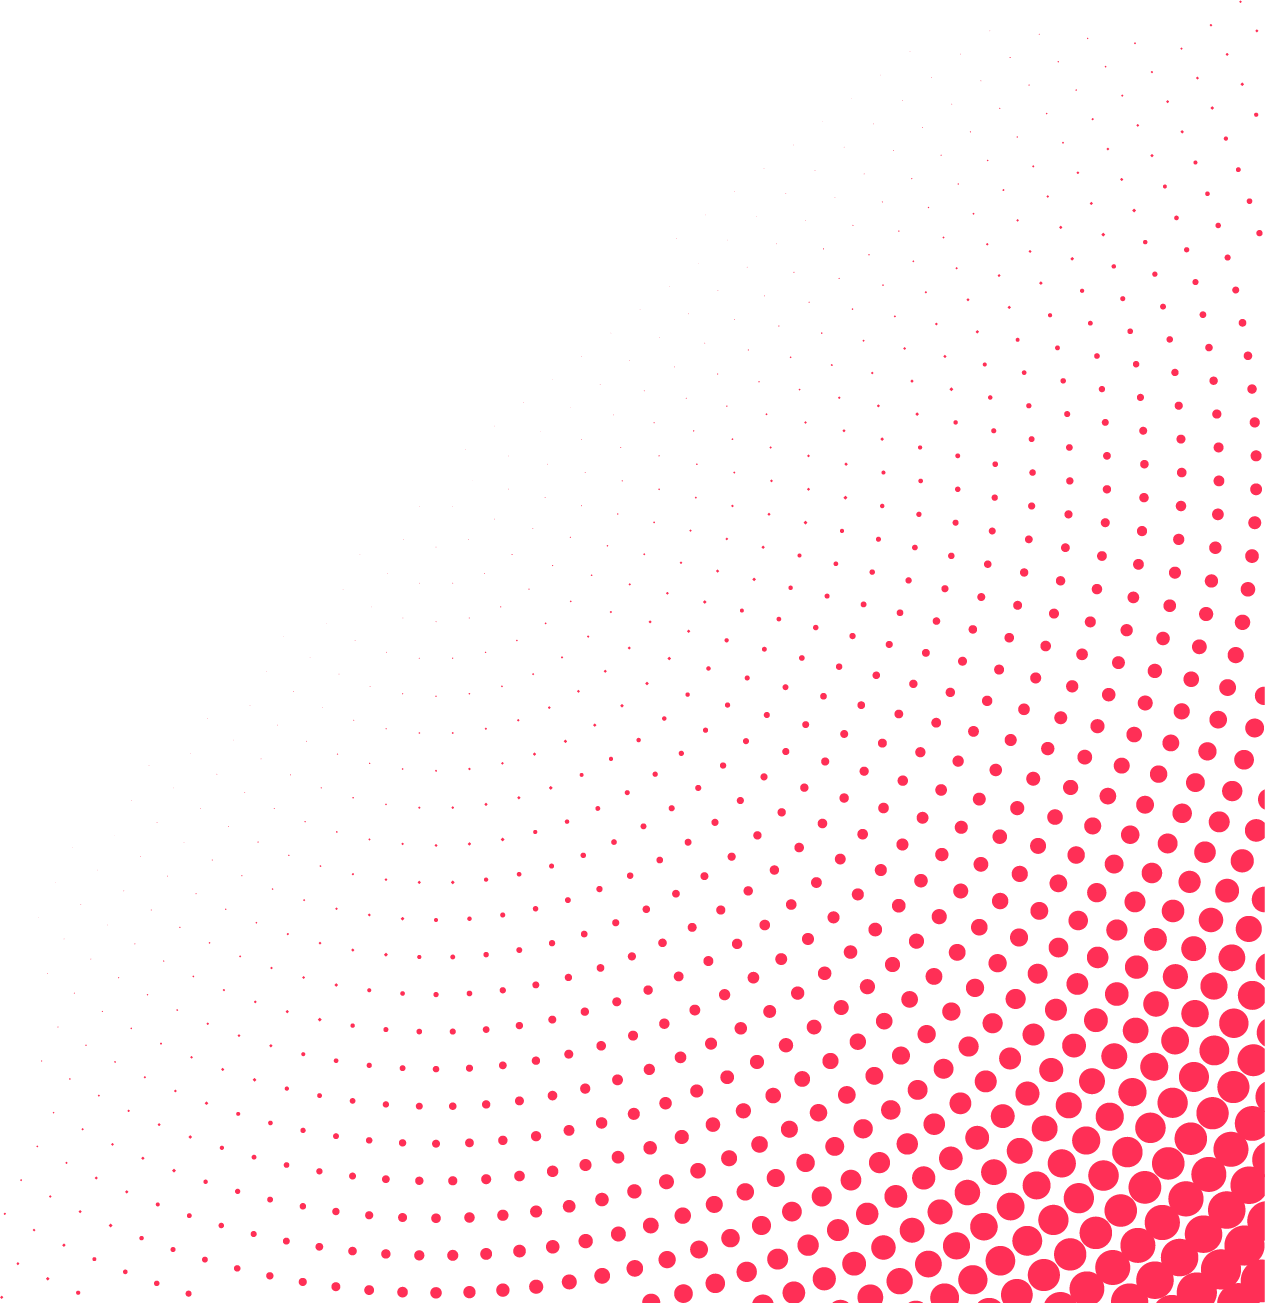 Png backgrounds. Black and red abstract